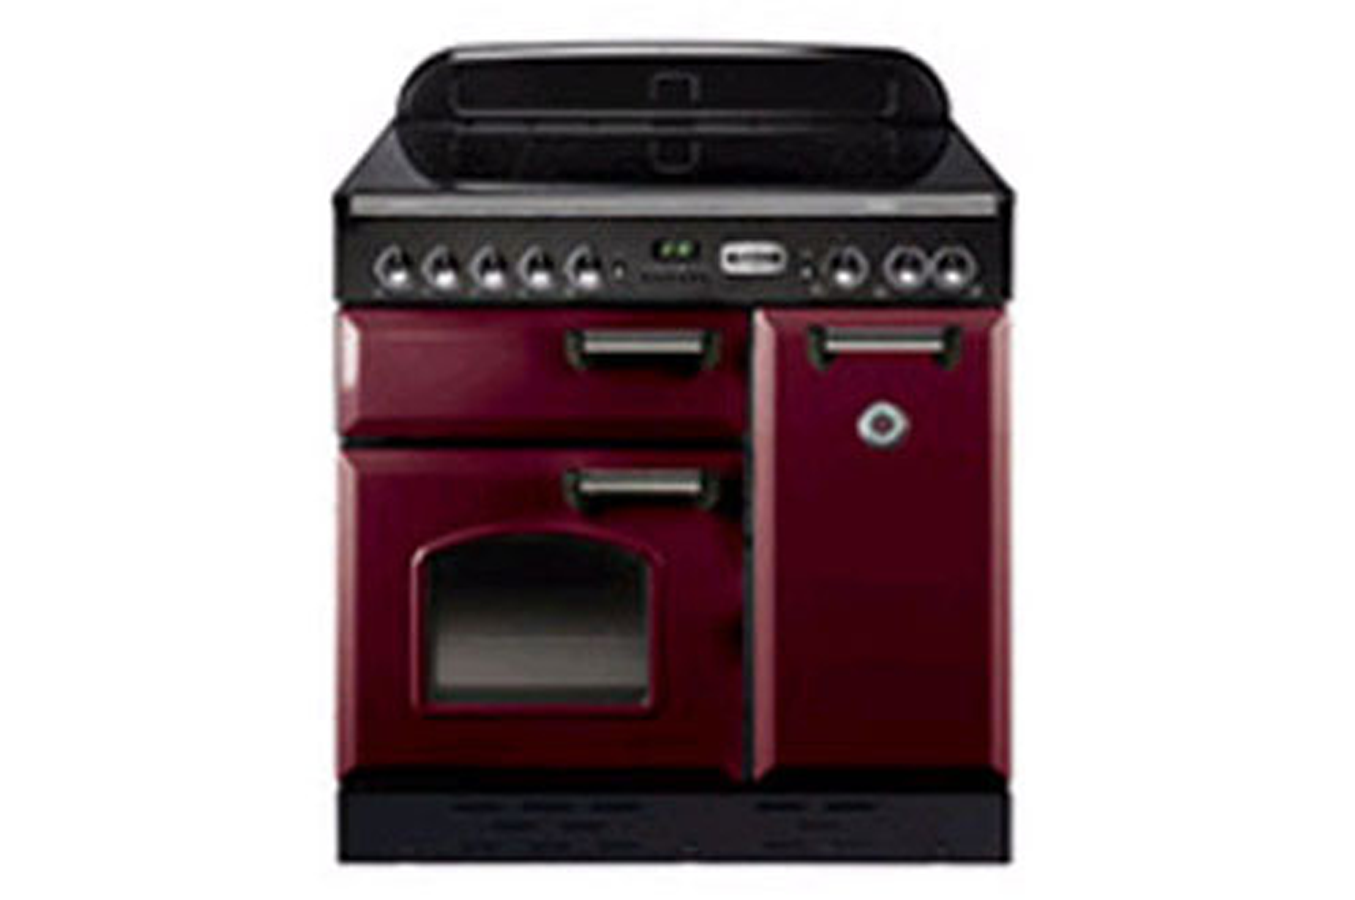 Piano de cuisson falcon classic 90 eicy c eu 3103684 darty - Falcon cuisiniere piano ...